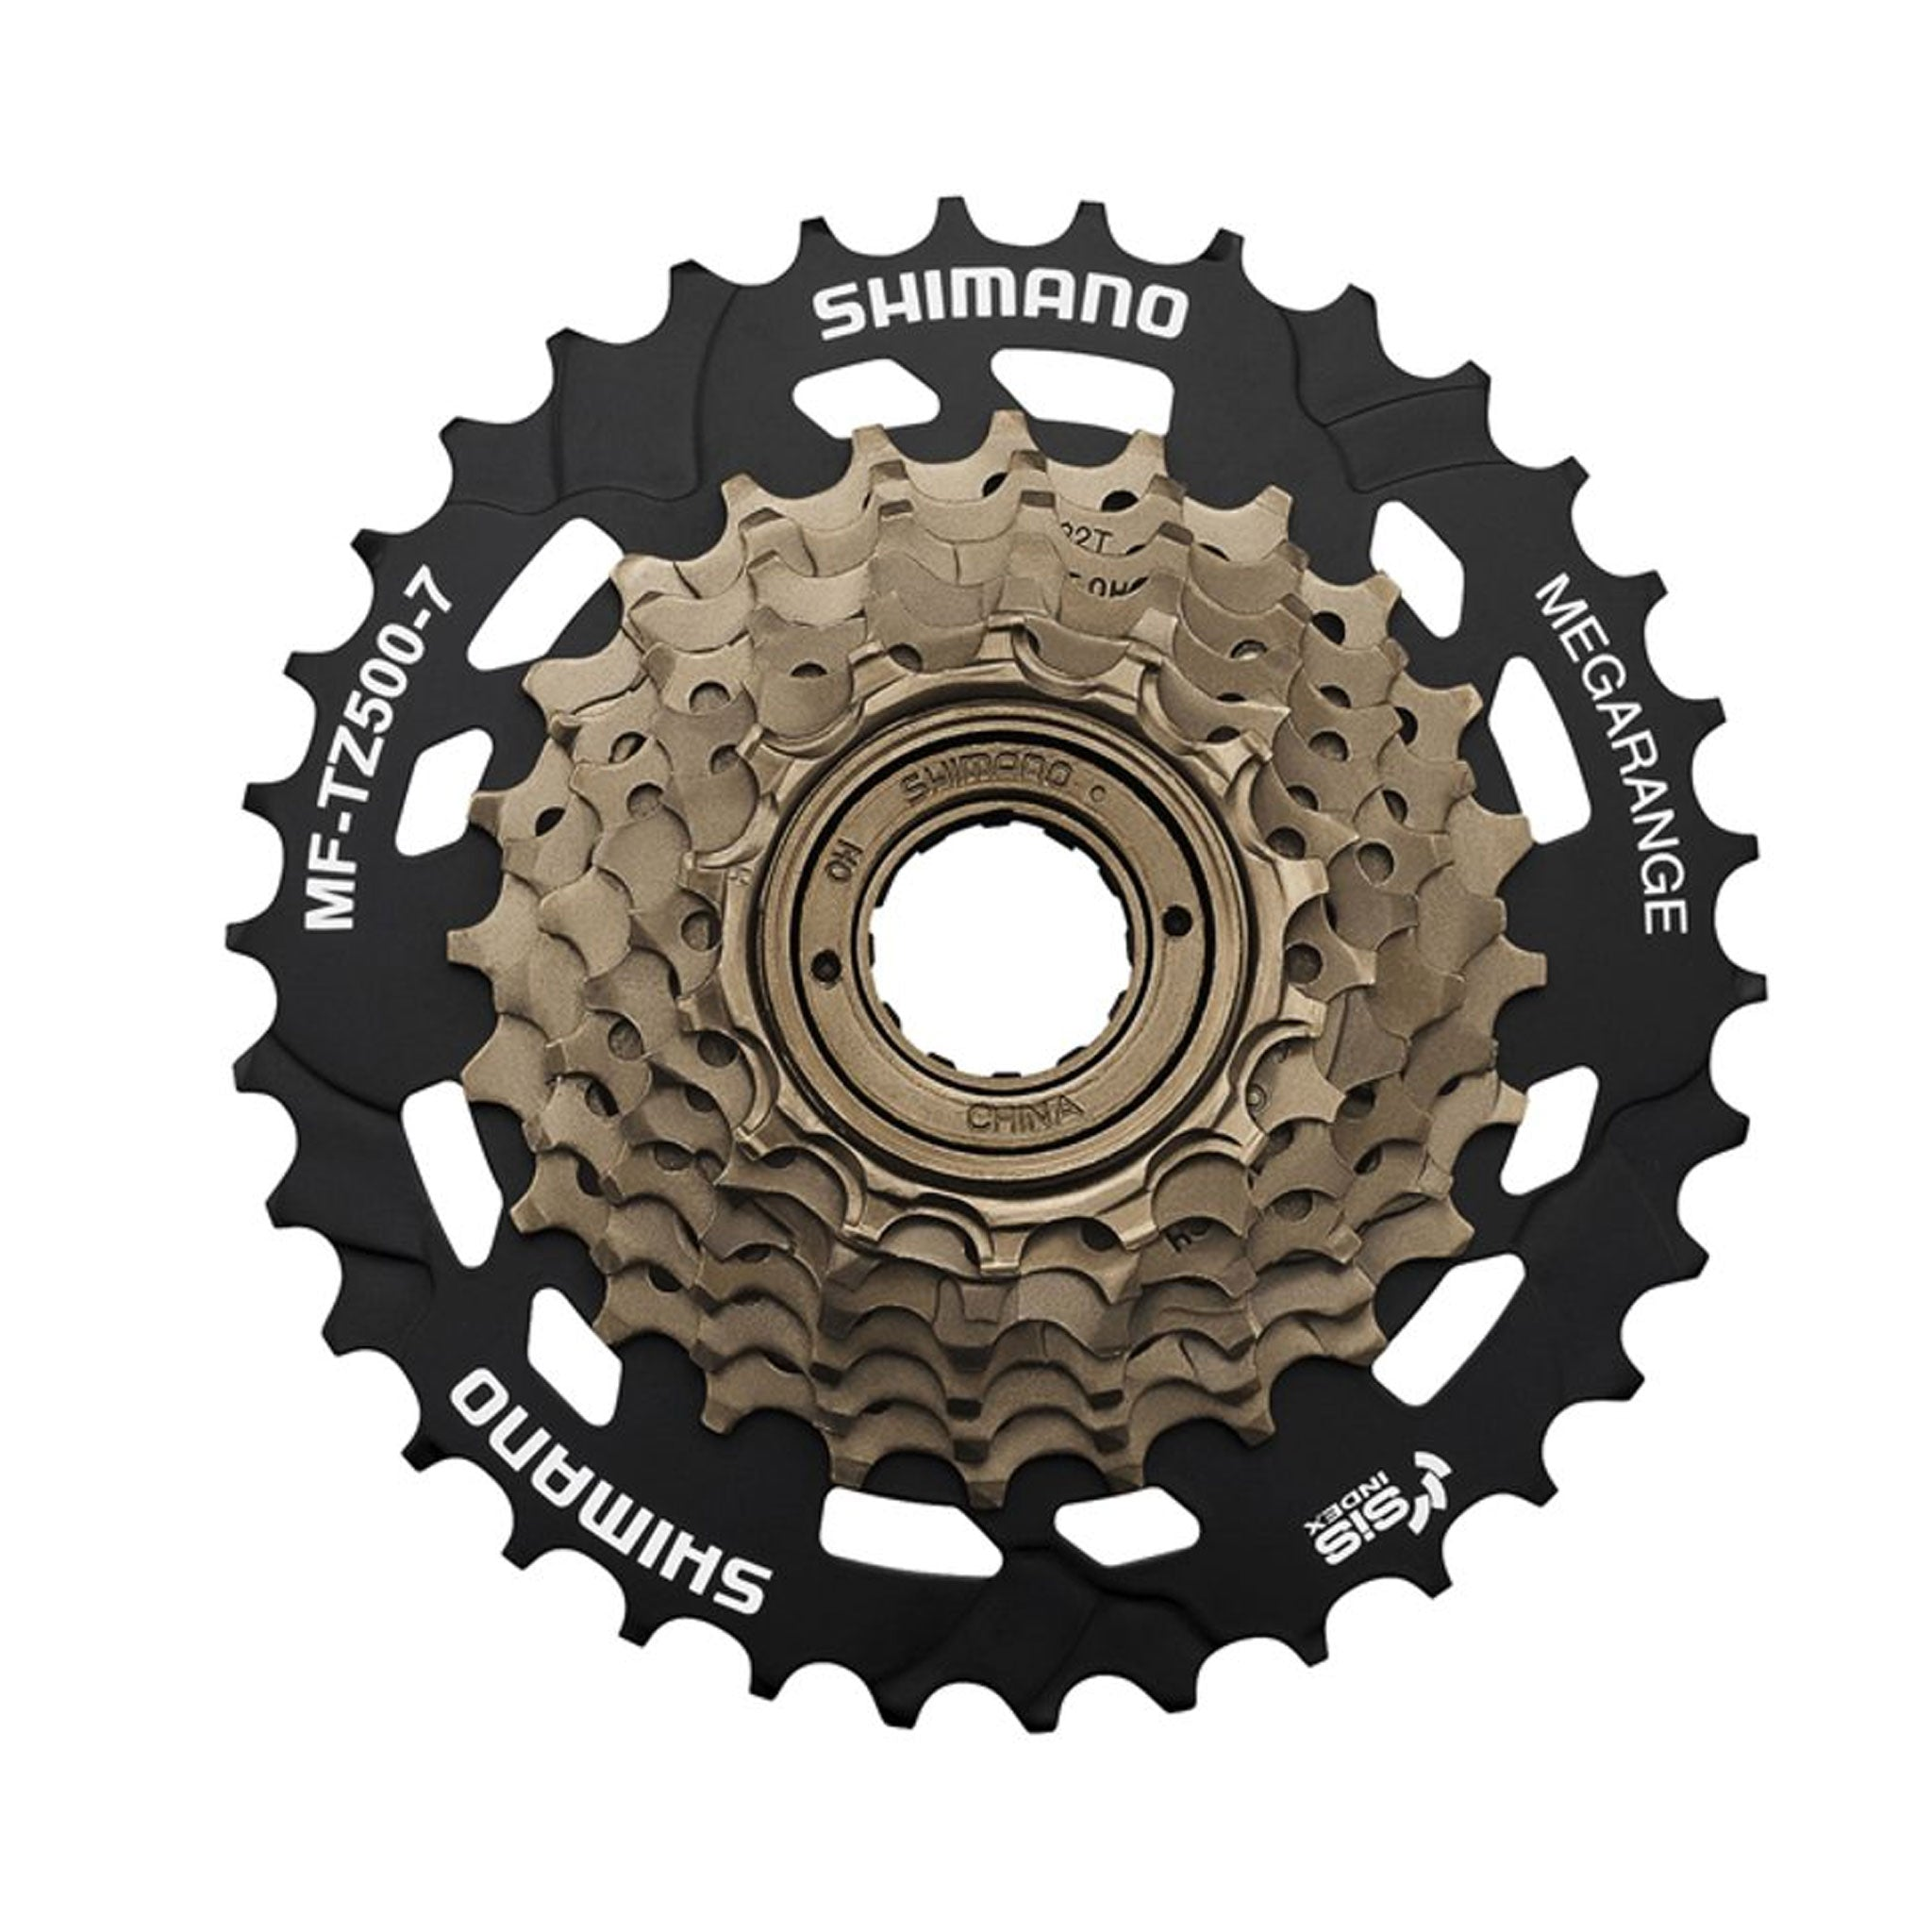 Shimano MF-TZ500 7 Speed Freewheel 7, 14-34 Tooth buy online at Woolys Wheels